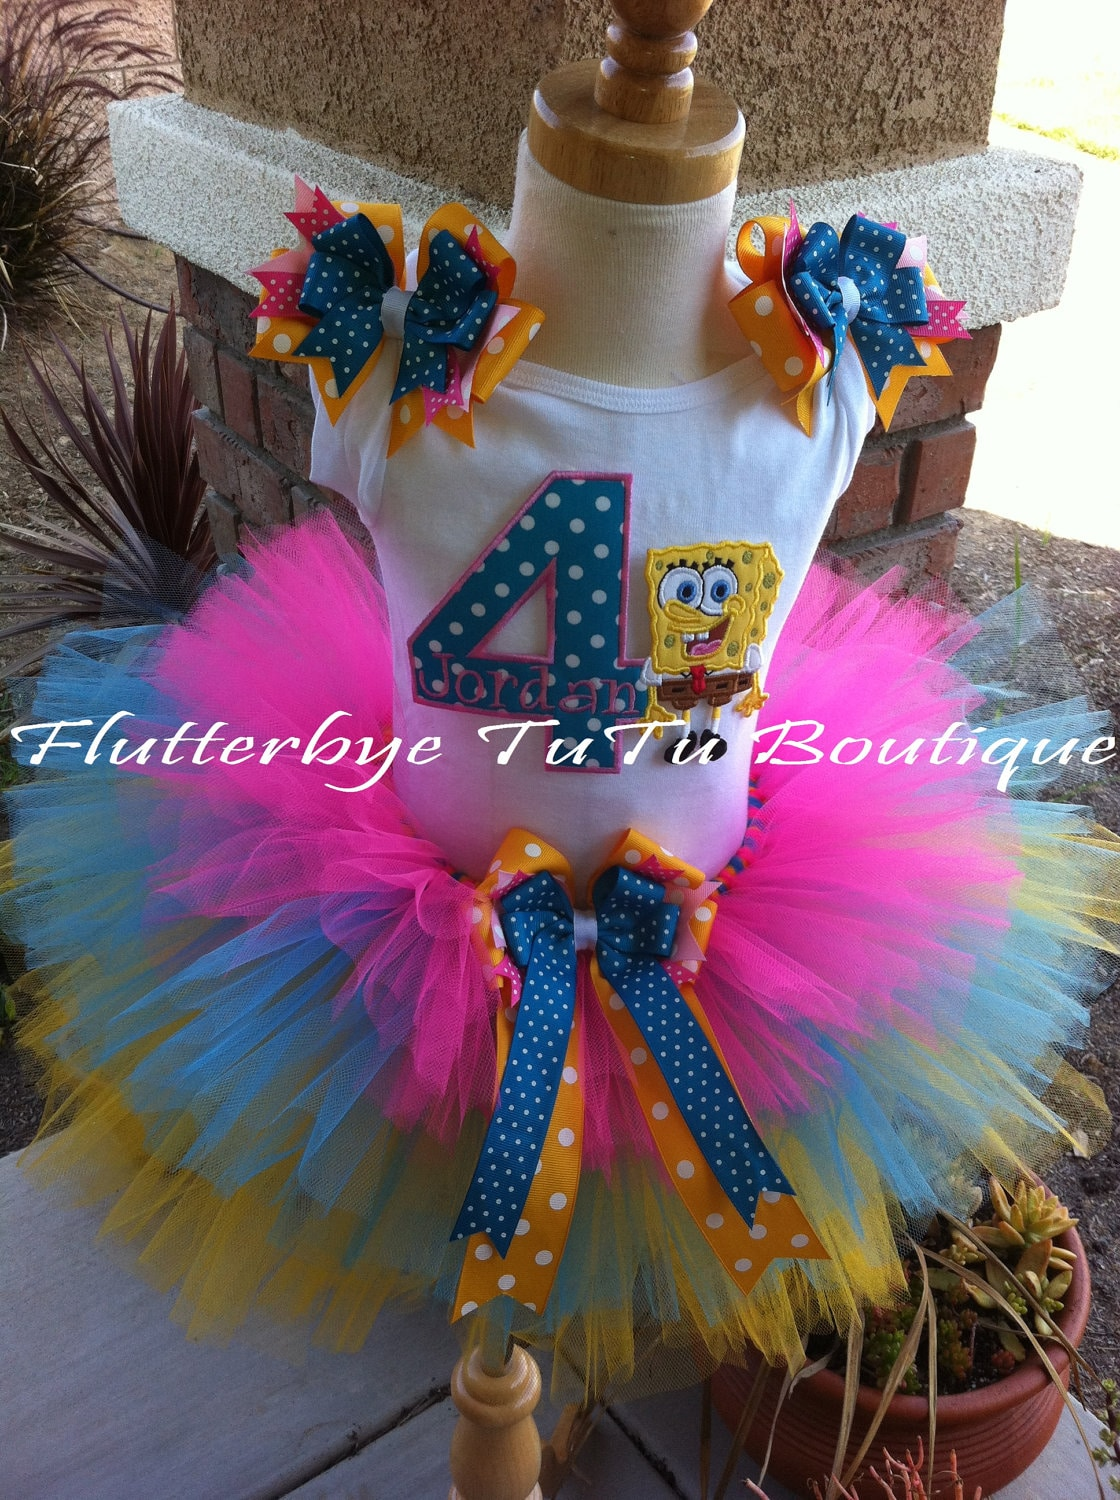 You searched for: spongebob birthday! Etsy is the home to thousands of handmade, vintage, and one-of-a-kind products and gifts related to your search. Spongebob Squarepants Birthday Outfit, Spongebob Squarepants First Birthday Outfit, Spongebob 1st, 2nd, 3rd, 4th, 5th Birthday Outfit SpongeBob, Spongebob Birthday T-shirt or bodysuit.